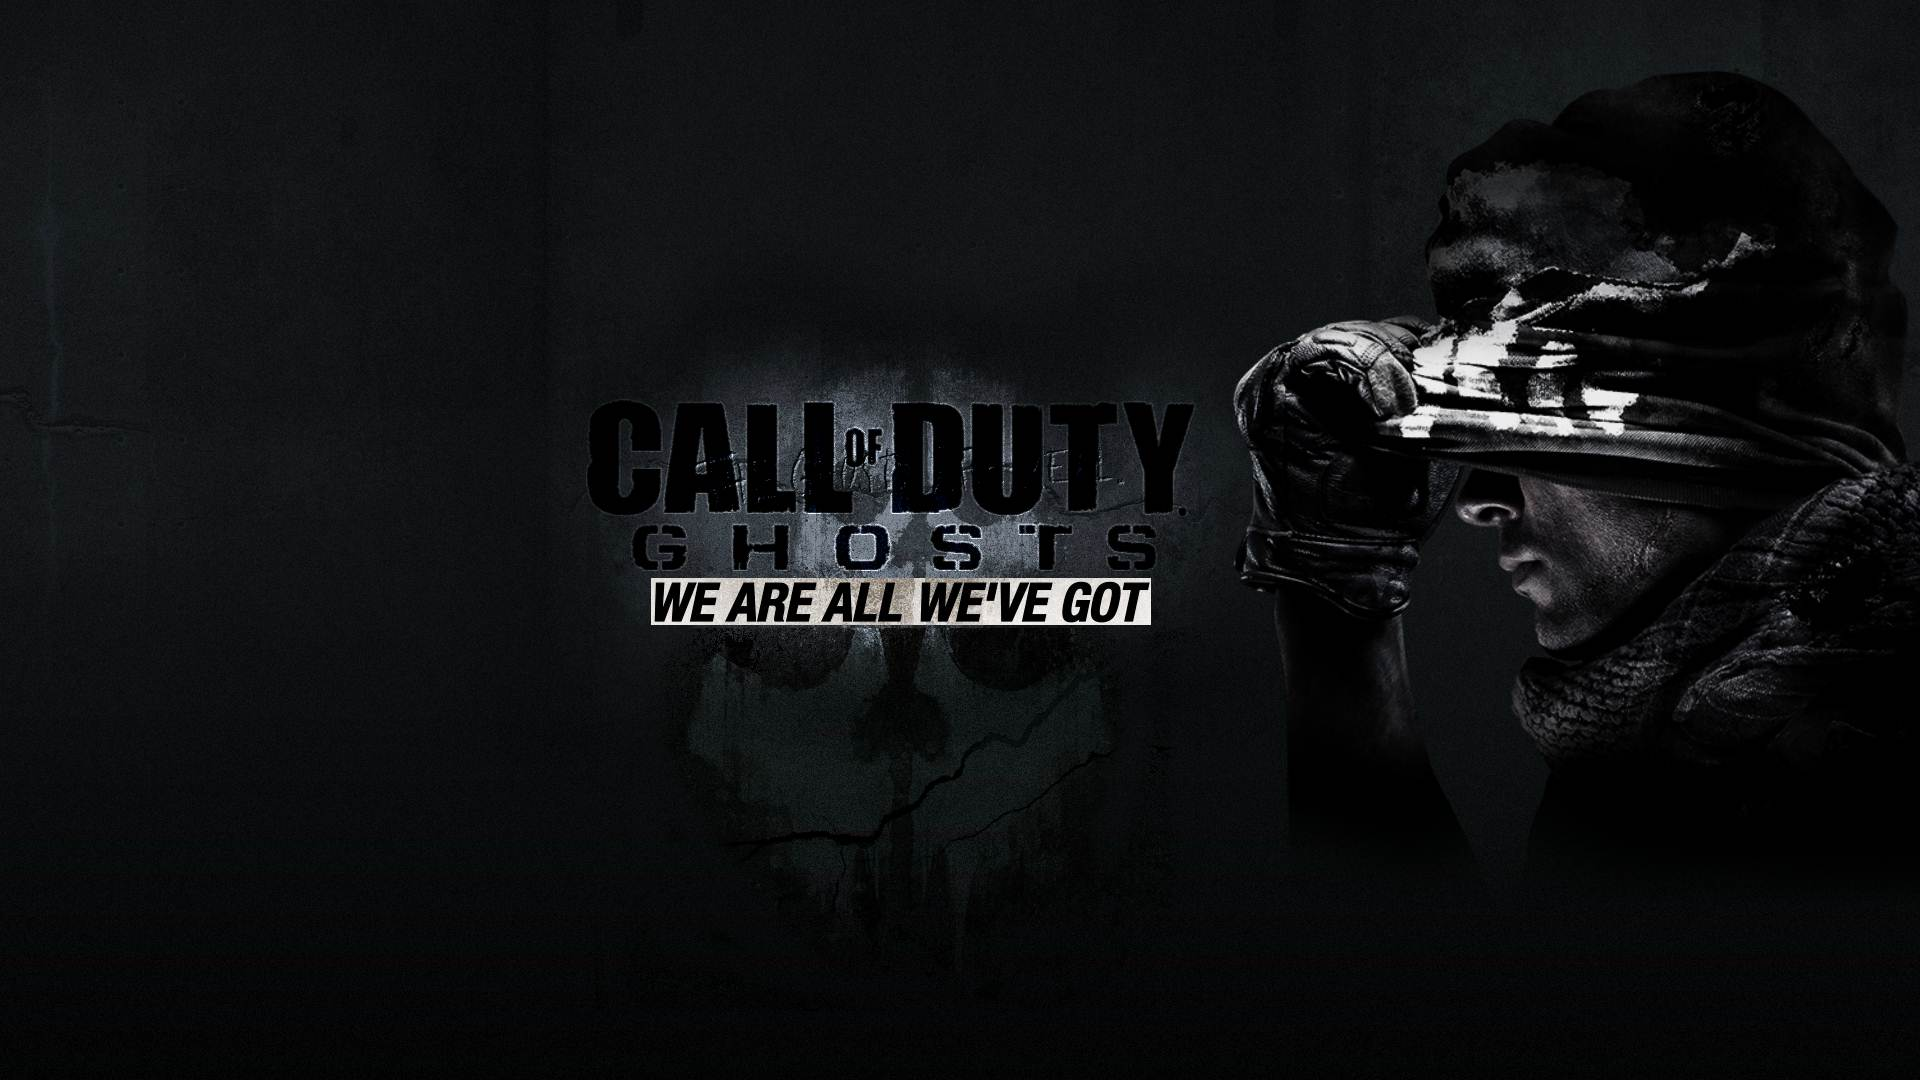 call of duty ghosts wallpaper in hd. Latest from the Home Page